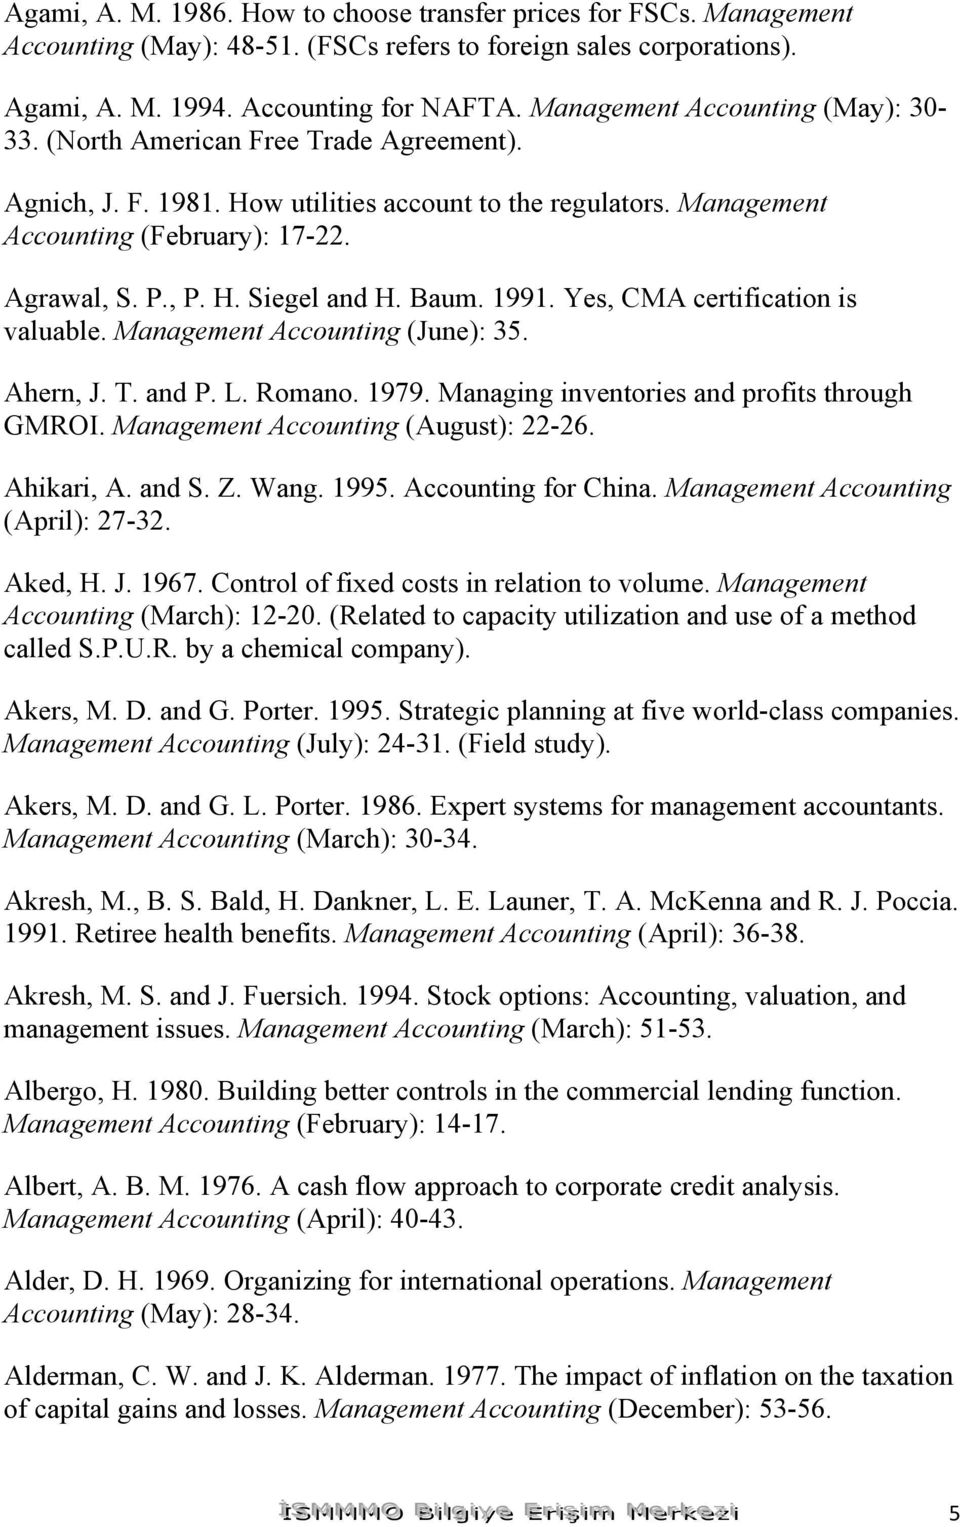 Baum. 1991. Yes, CMA certification is valuable. Management Accounting (June): 35. Ahern, J. T. and P. L. Romano. 1979. Managing inventories and profits through GMROI.